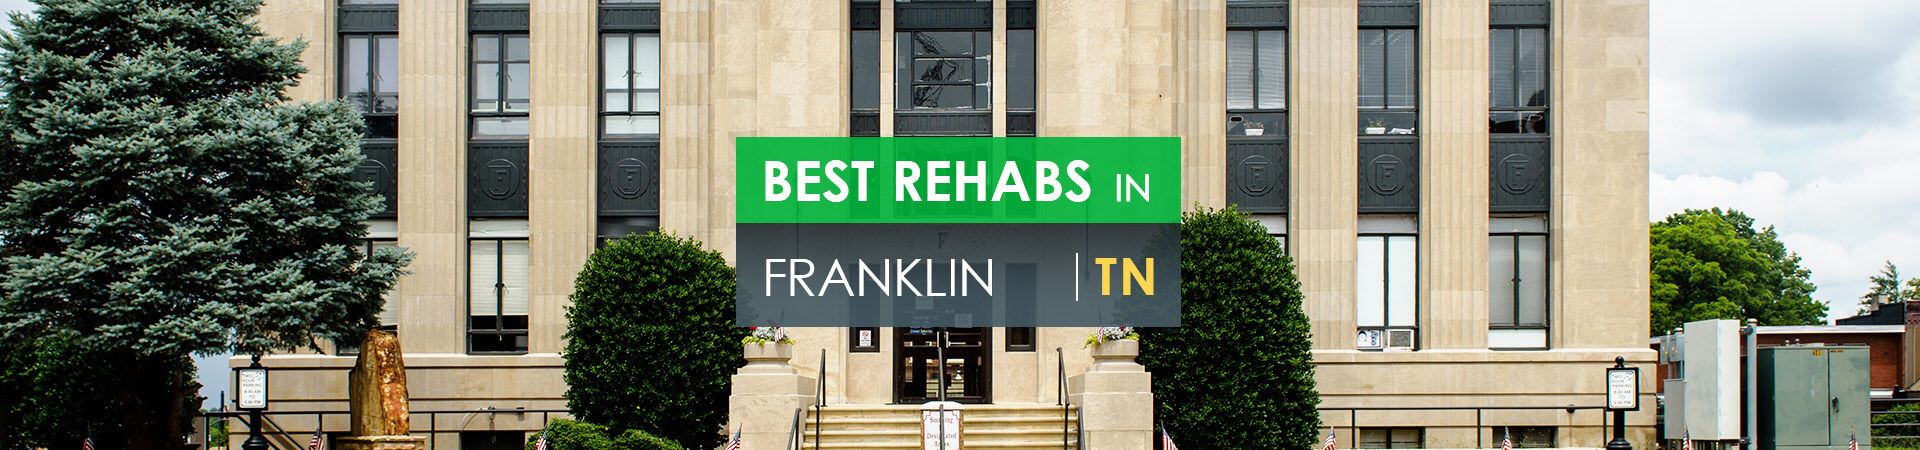 Best rehabs in Franklin, TN